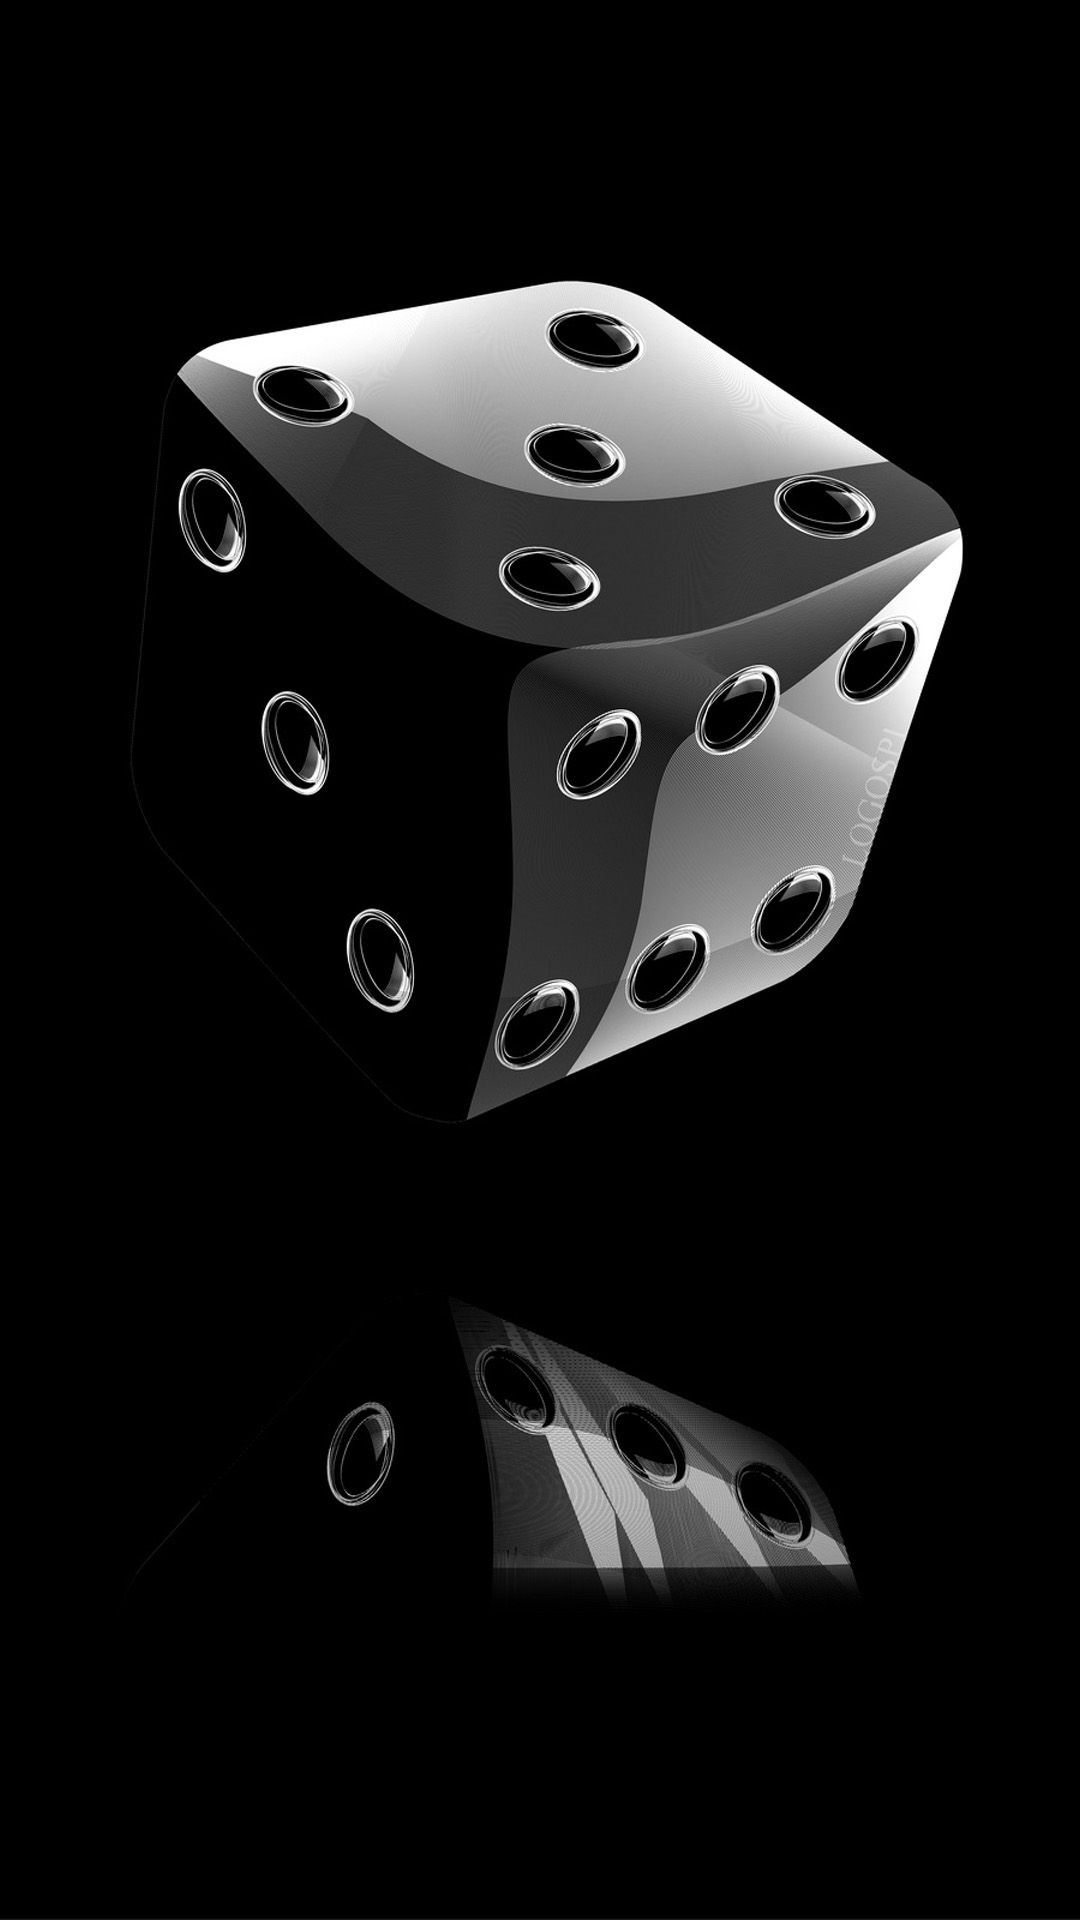 3d Wallpaper Iphone 6 Posted By John Mercado